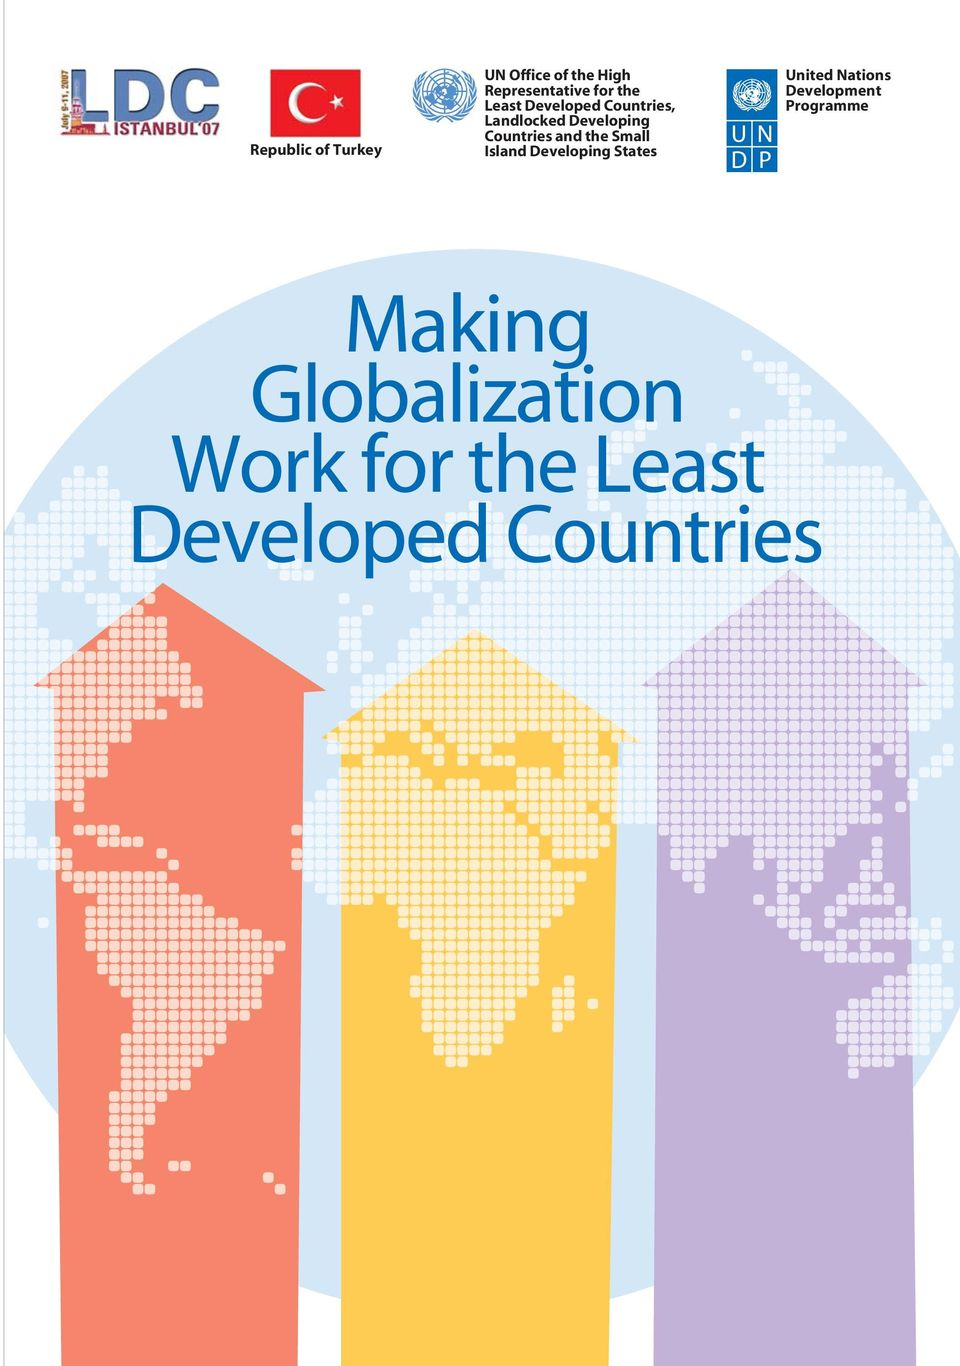 the Small Island Developing States United Nations Development